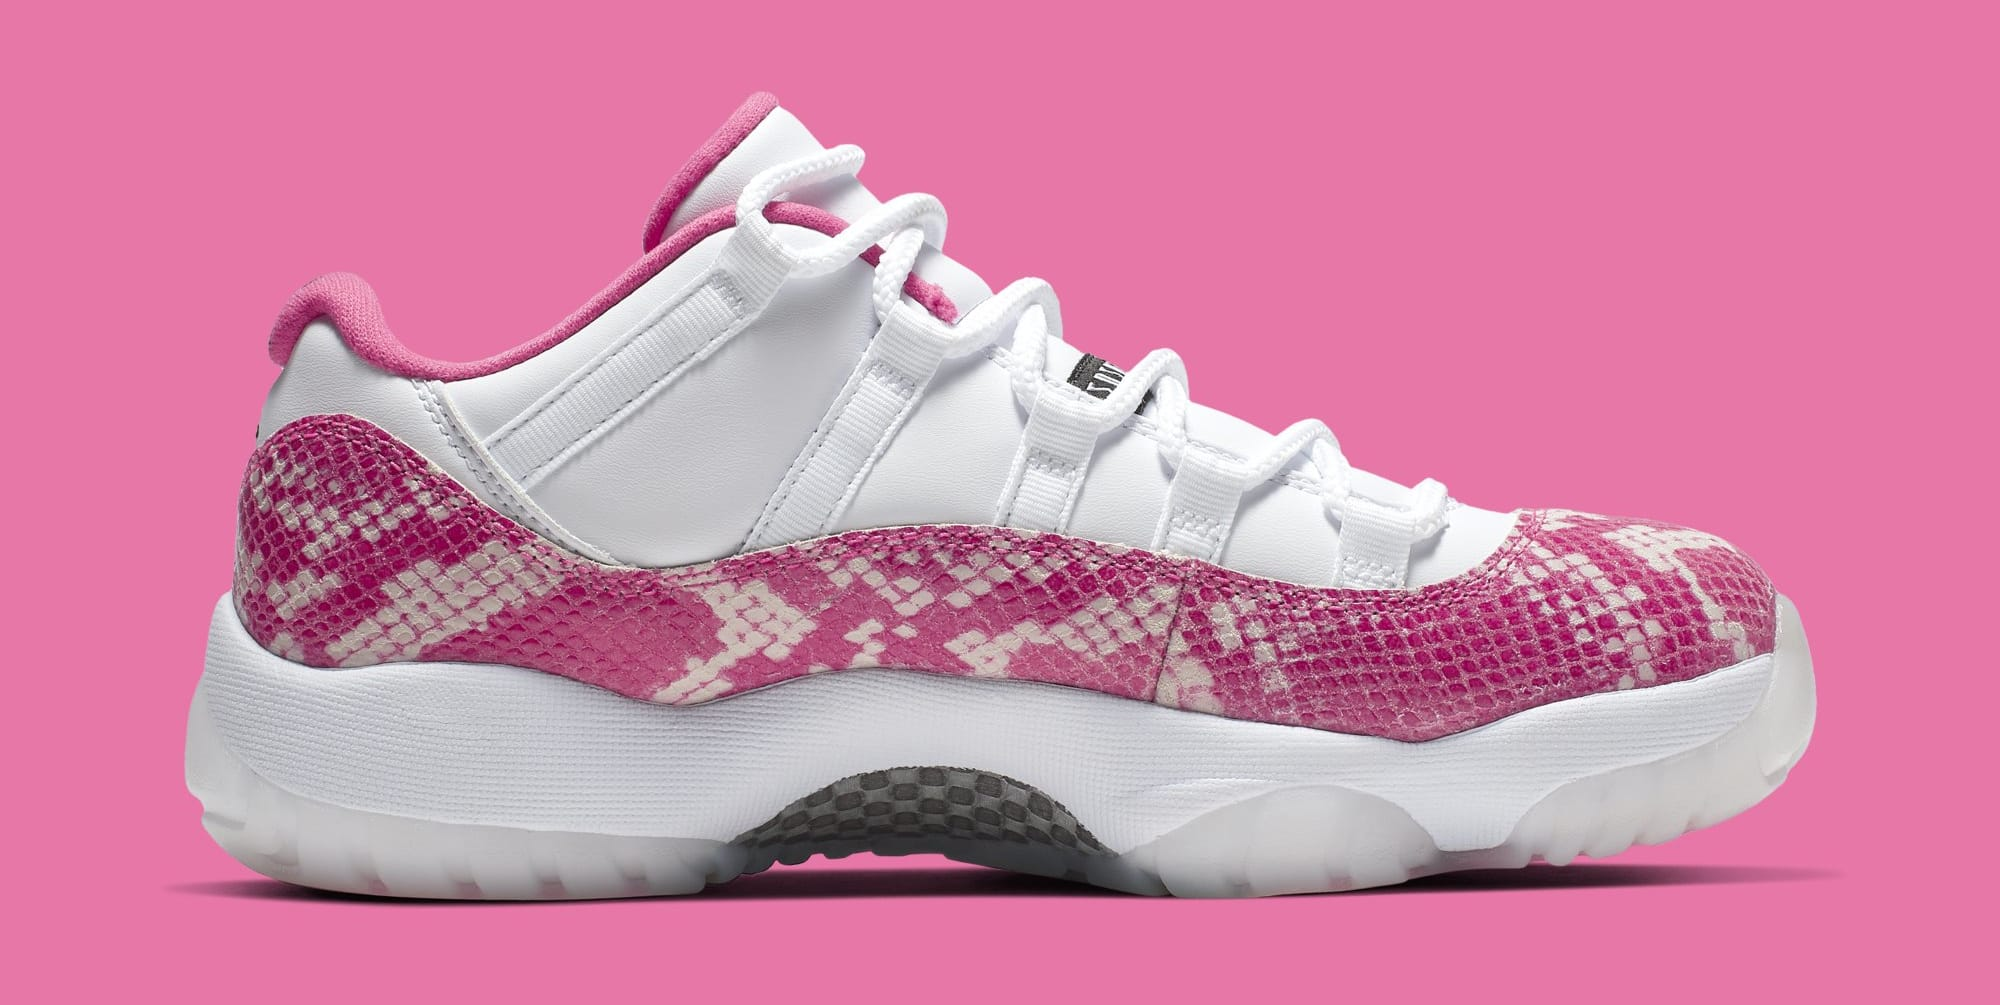 d85137100357 Image via Nike Air Jordan 11 Low  Pink Snakeskin  AH7860-106 (Medial)